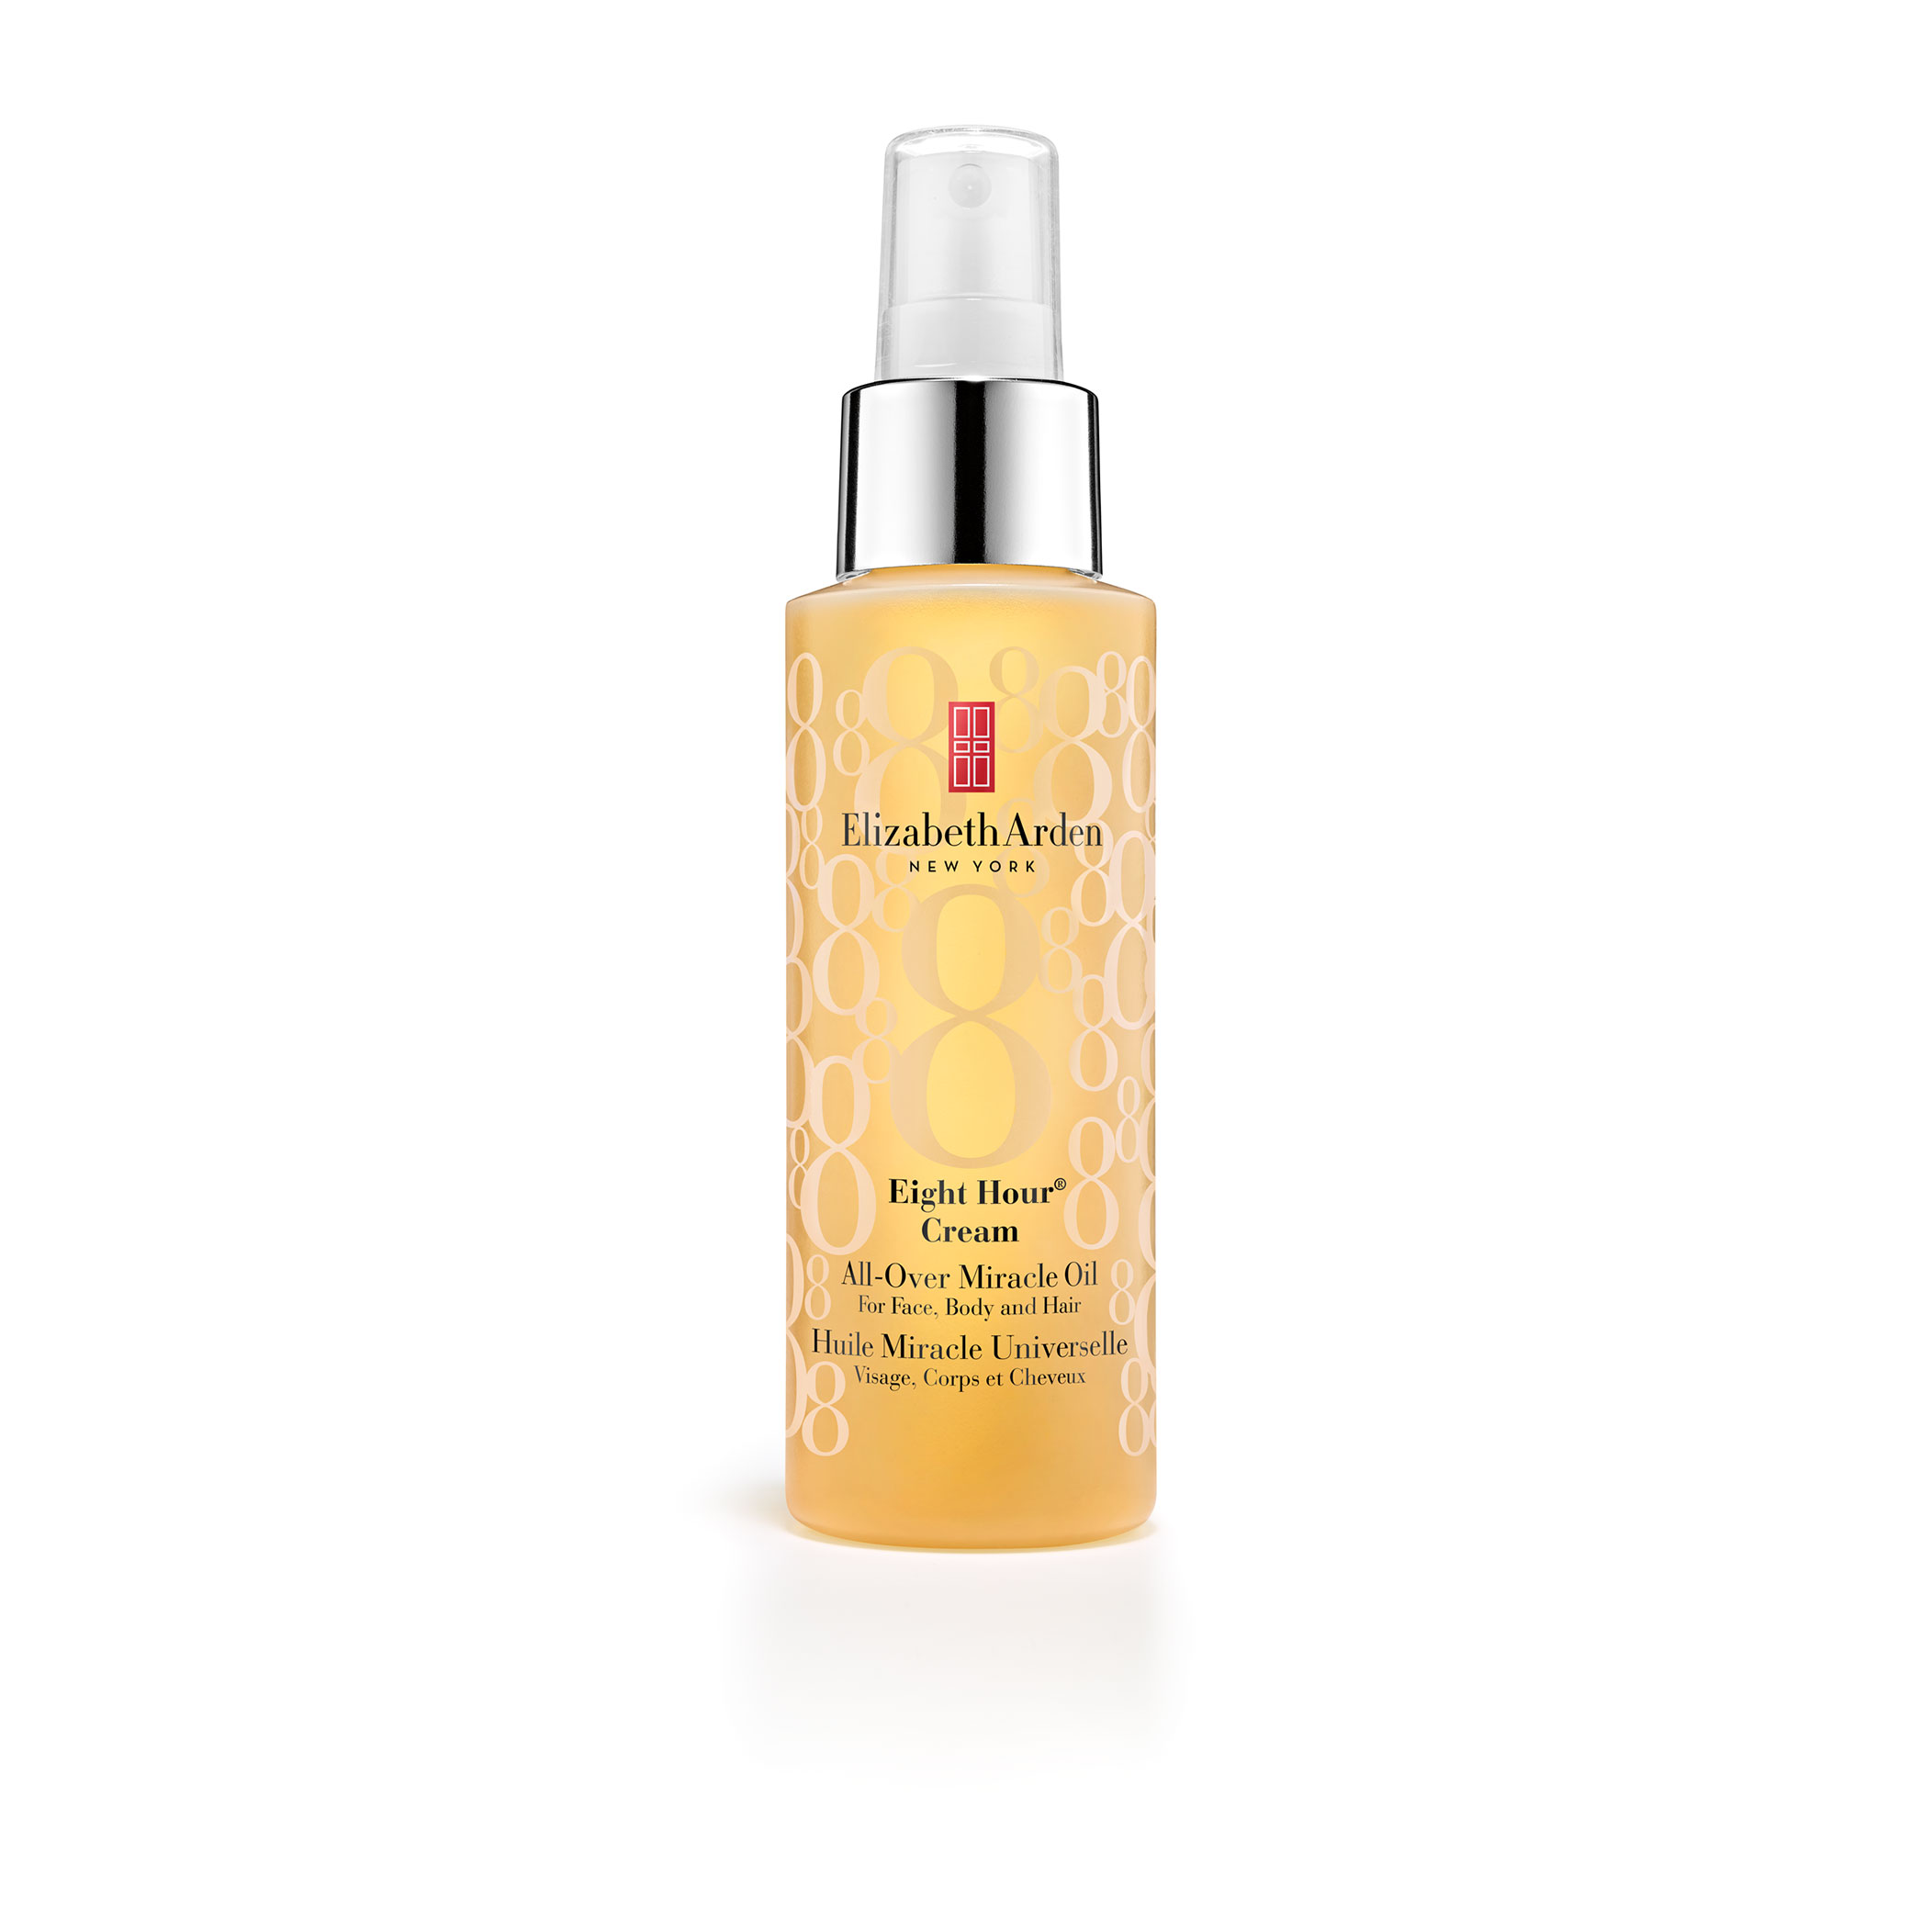 Eight Hour® Cream All-Over Miracle Oil With Tsubaki Oil